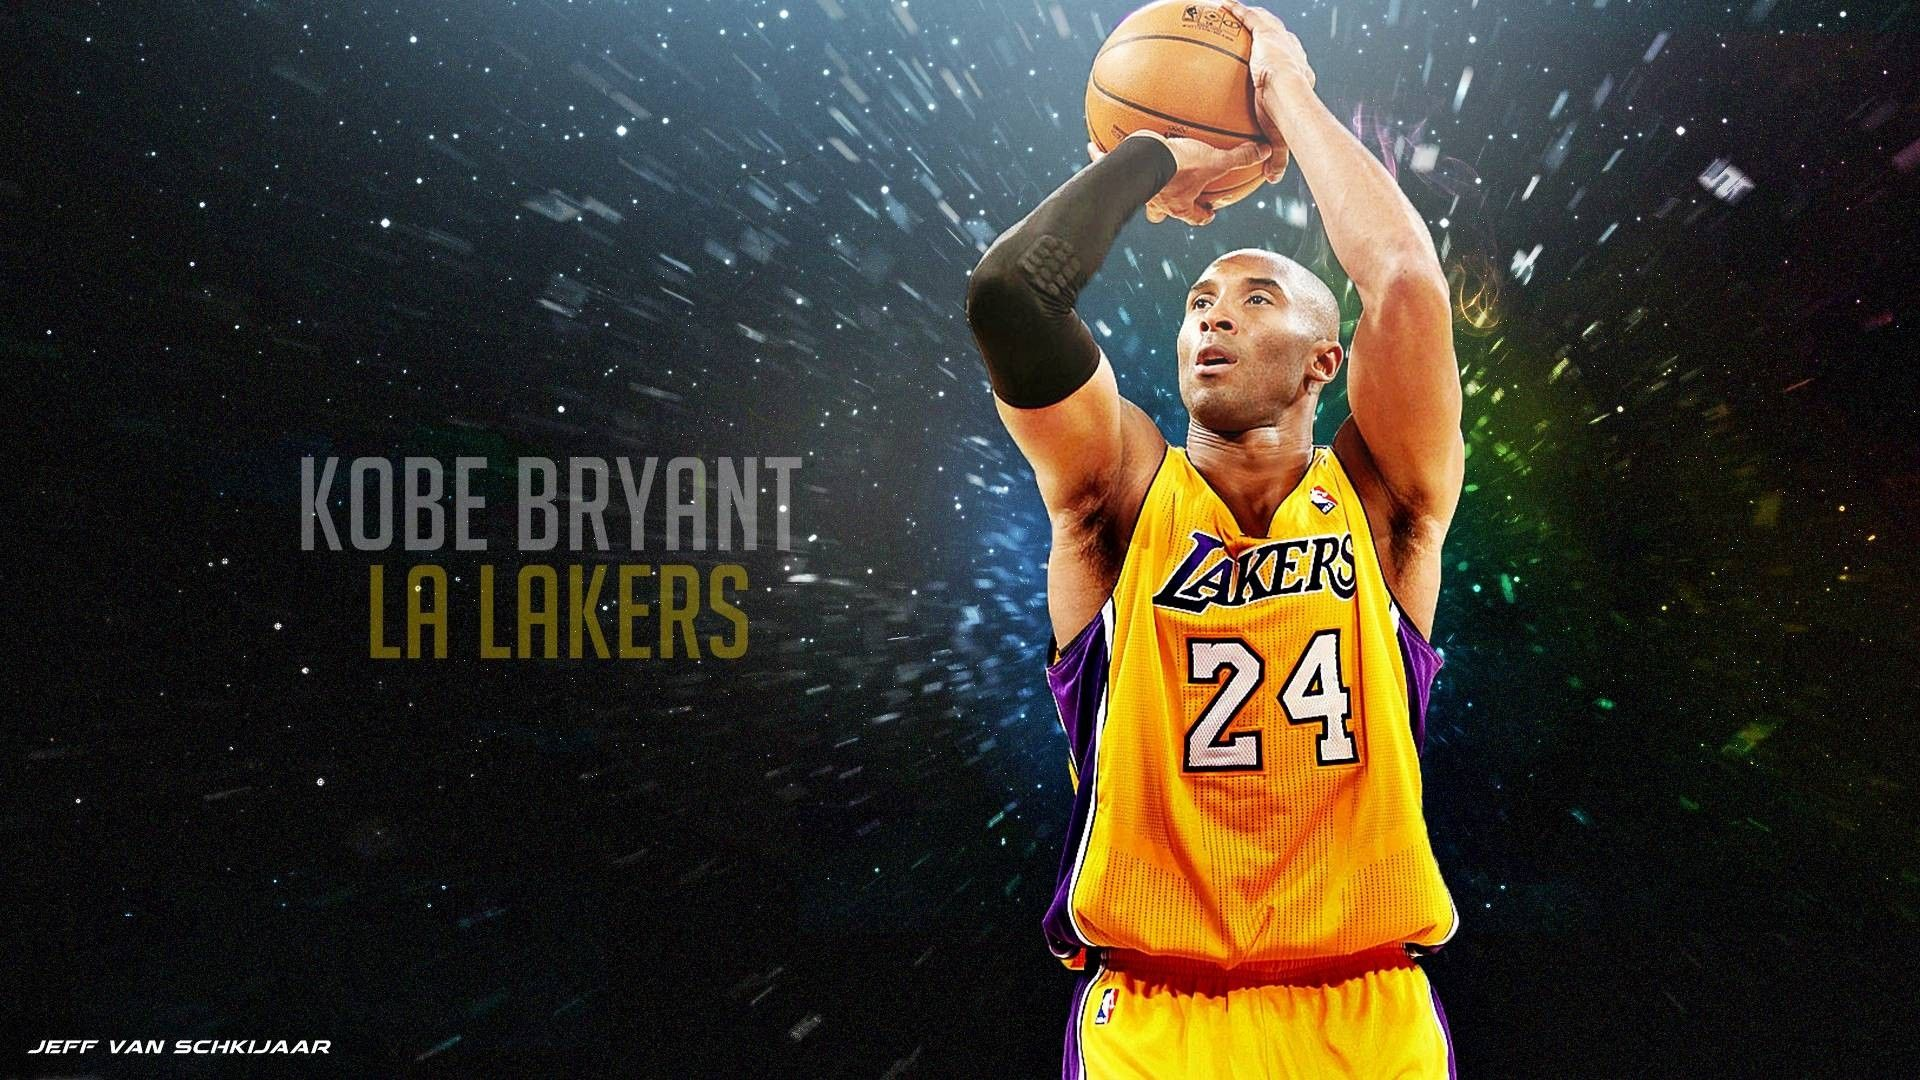 Fresh Kobe Bryant Desktop Background In 2020 Kobe Bryant Wallpaper Lakers Wallpaper Kobe Bryant